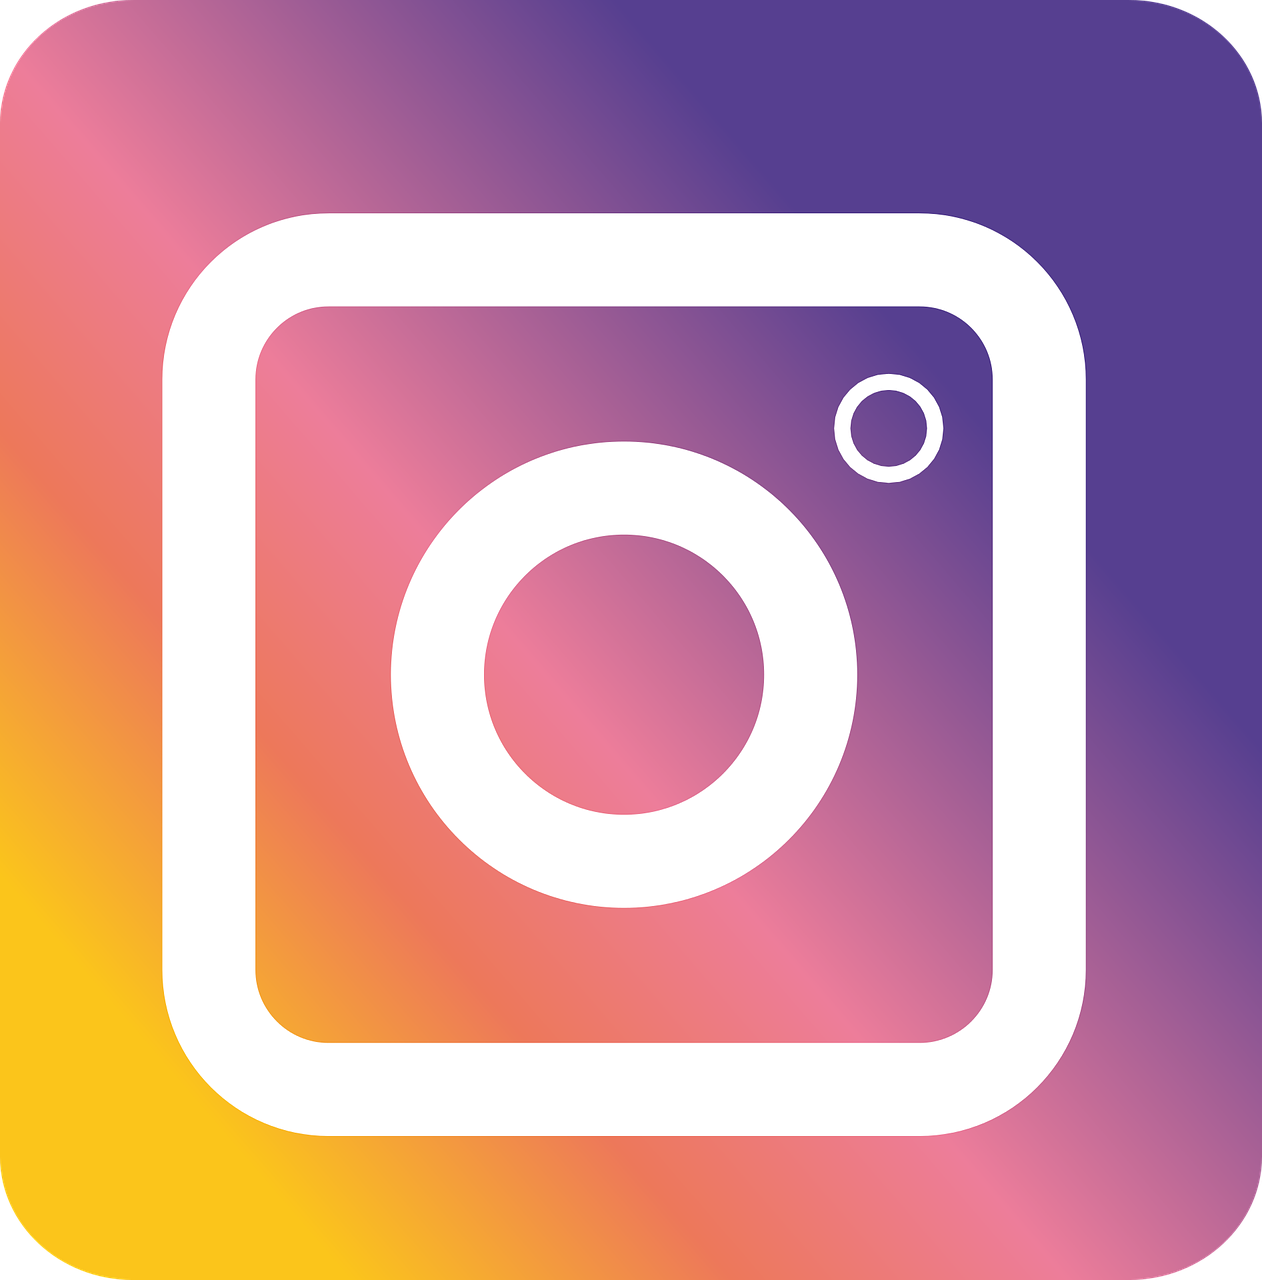 ¿Instagram No Funciona? 2021